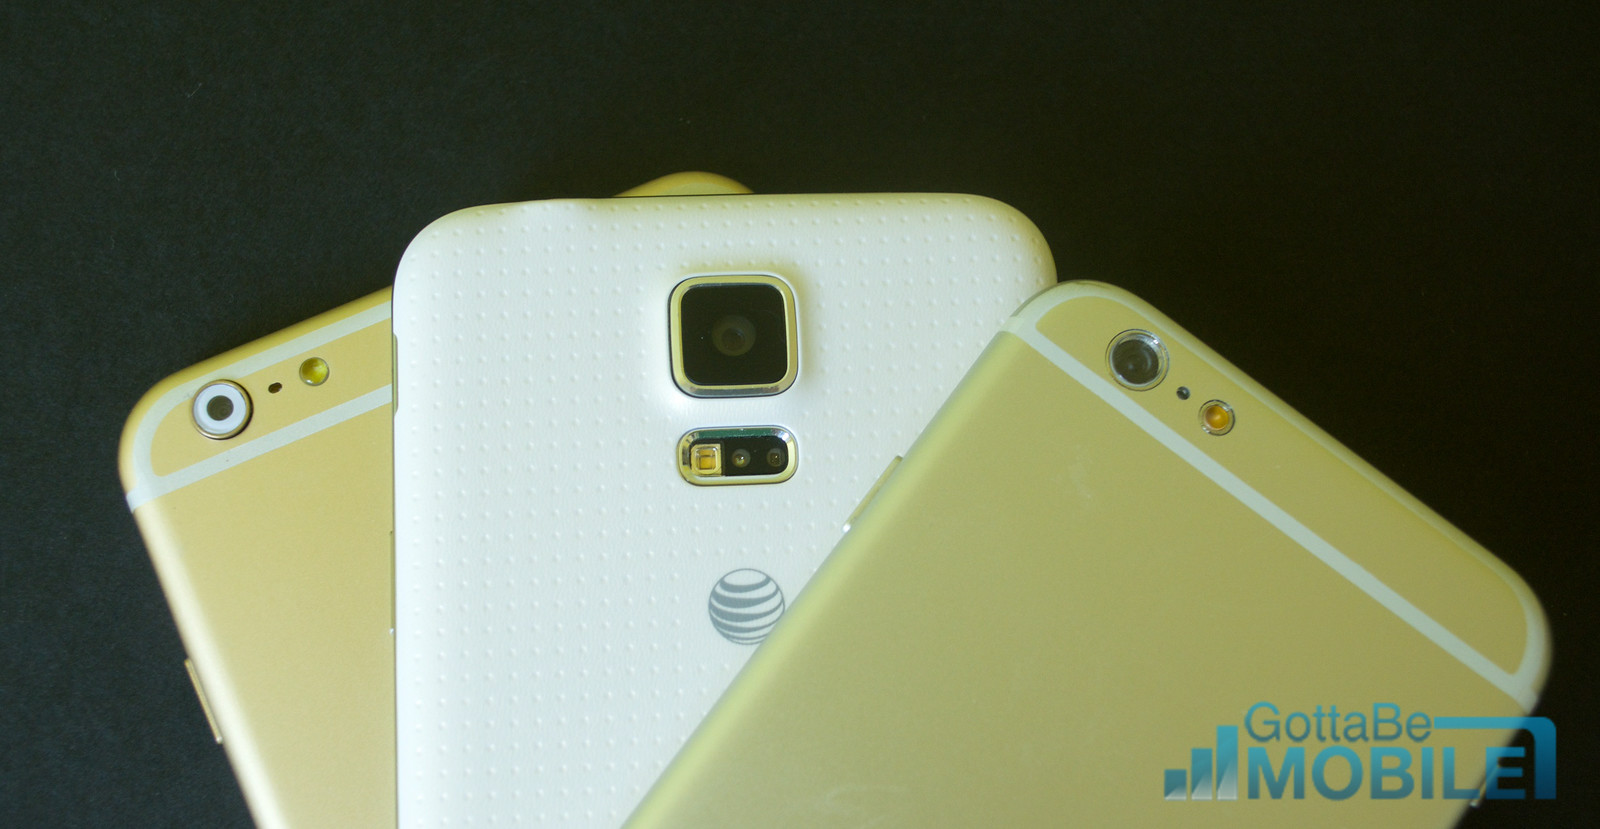 iPhone 6 vs Galaxy S5 Video: 5 Key Details